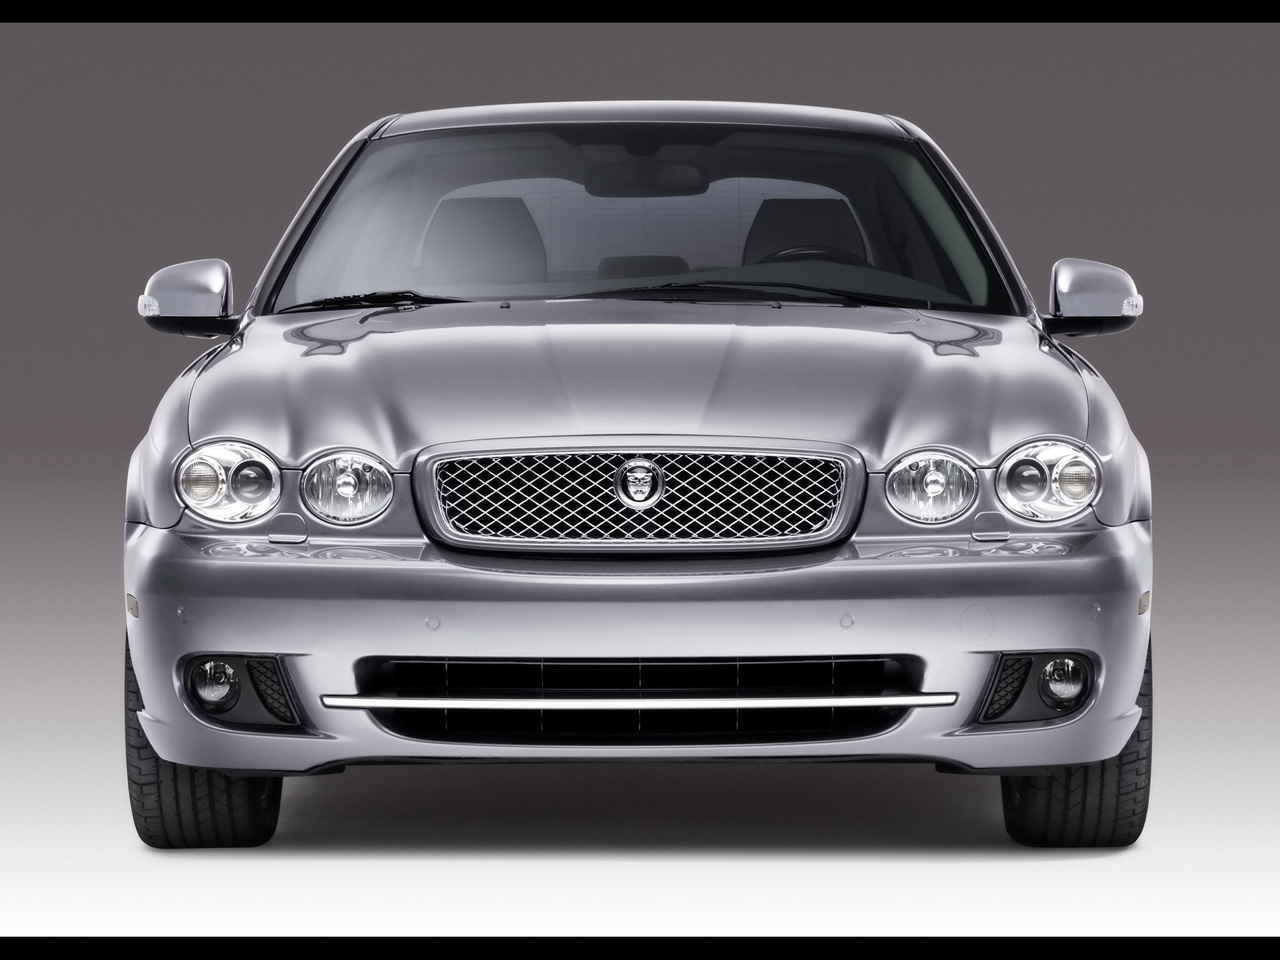 2008 Jaguar X-type #2